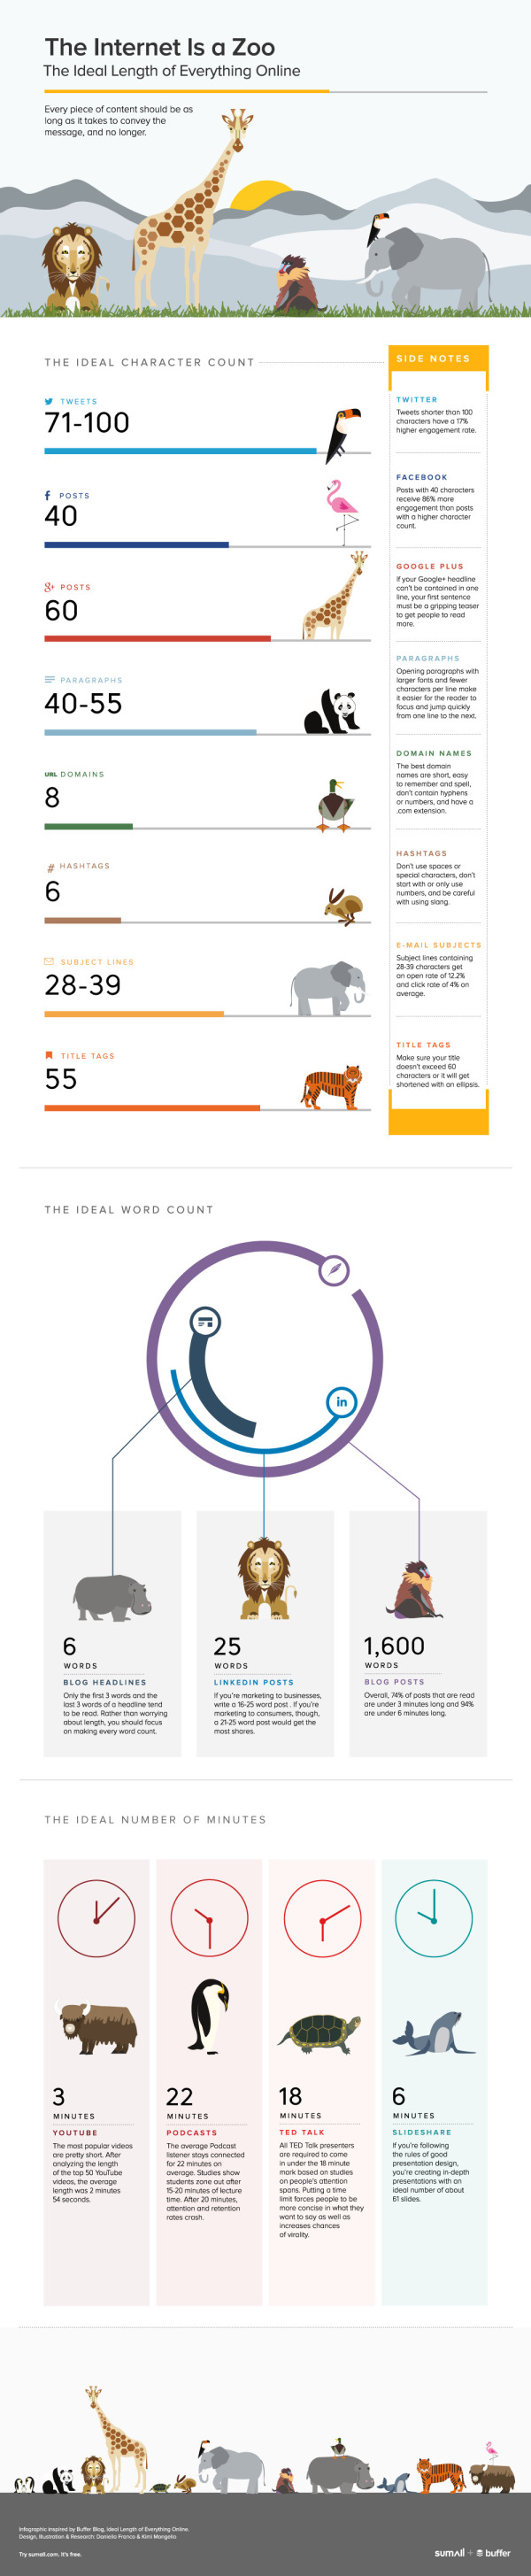 The Internet Is a Zoo: The Ideal Length of Everything Online infographic